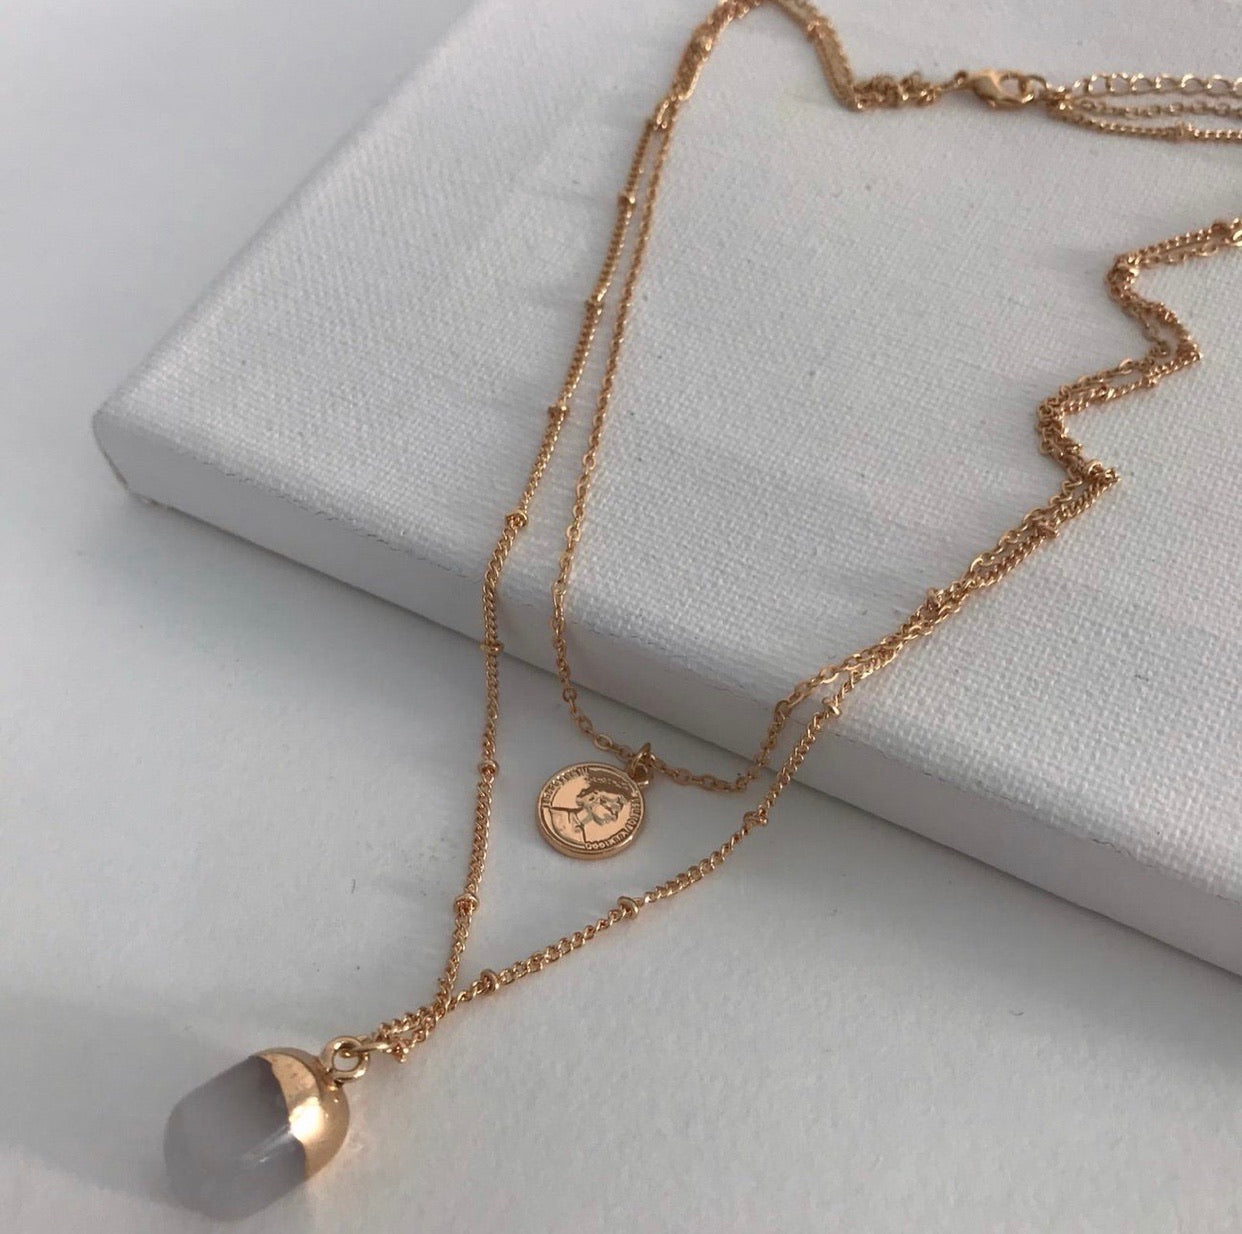 THE DEBRA COIN AND STONE NECKLACE SET